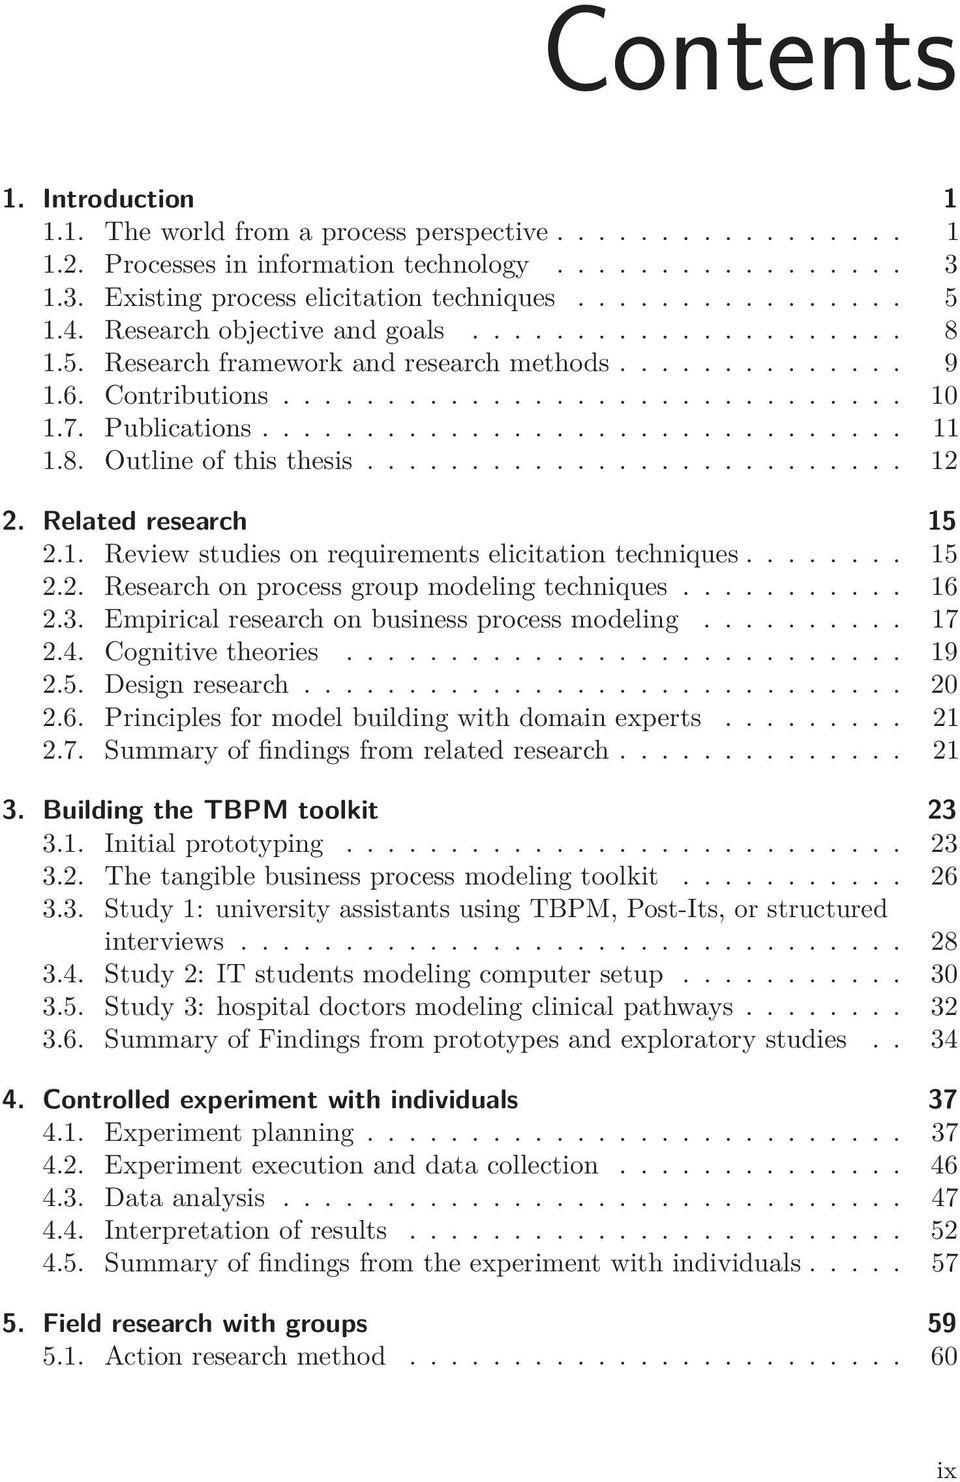 .. 15 2.2. Research on process group modeling techniques... 16 2.3. Empirical research on business process modeling... 17 2.4. Cognitive theories..... 19 2.5. Design research... 20 2.6. Principles for model building with domain experts.